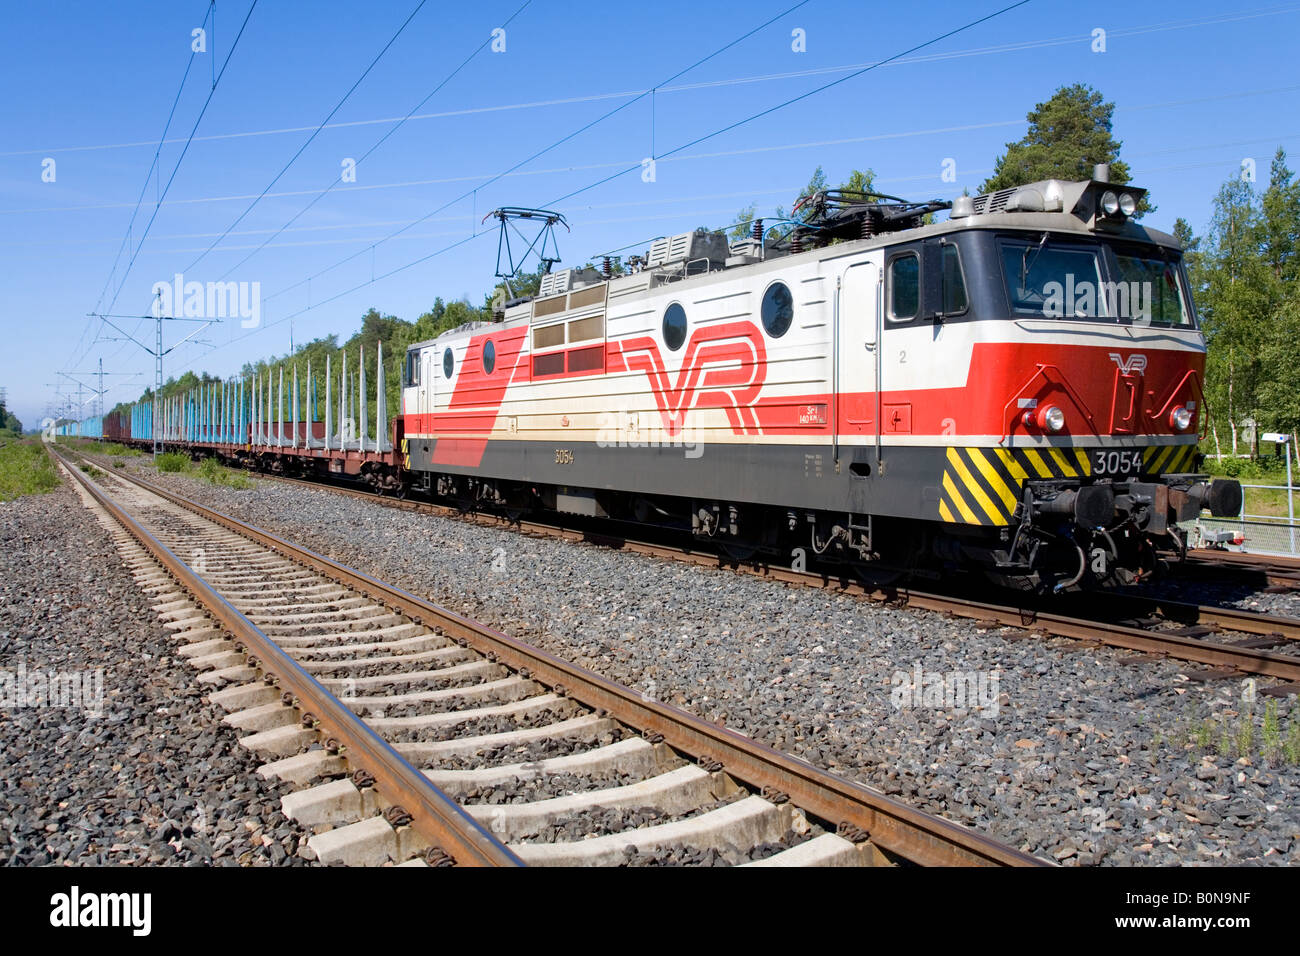 Finnish cargo train locomotive owned by VR and concrete sleepers on rails , Finland - Stock Image